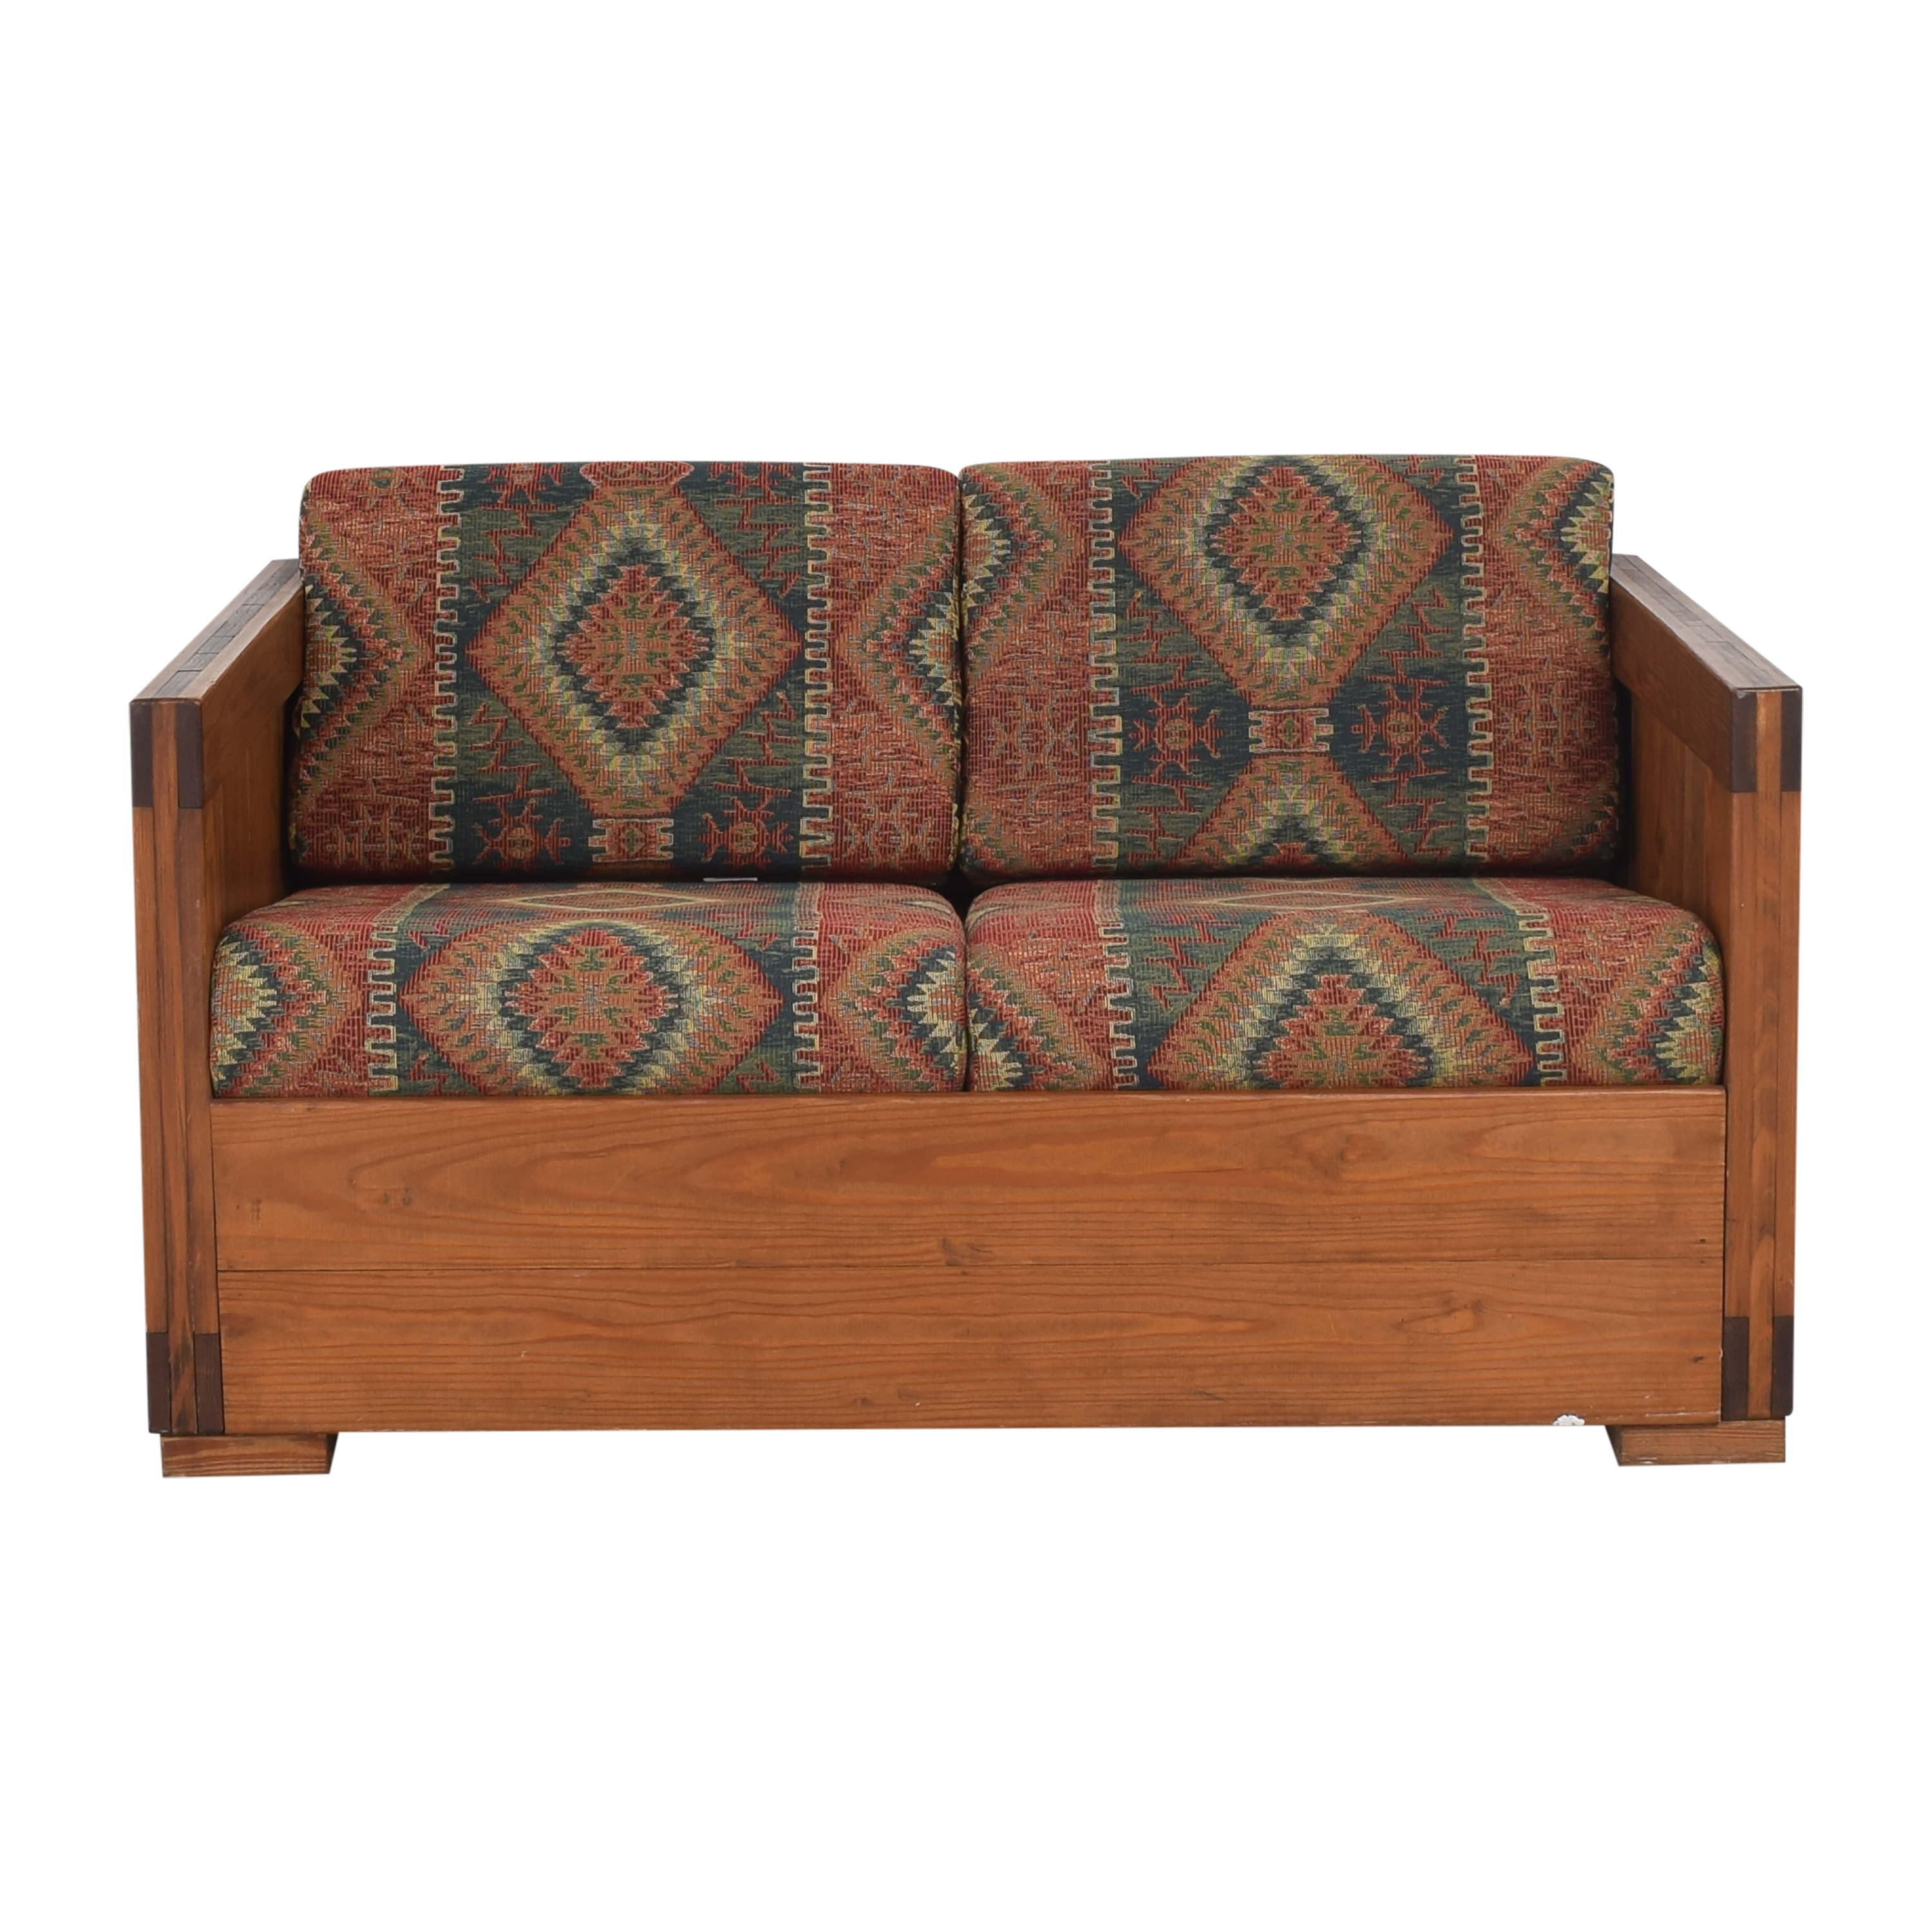 shop This End Up Classic Loveseat This End Up Sofas